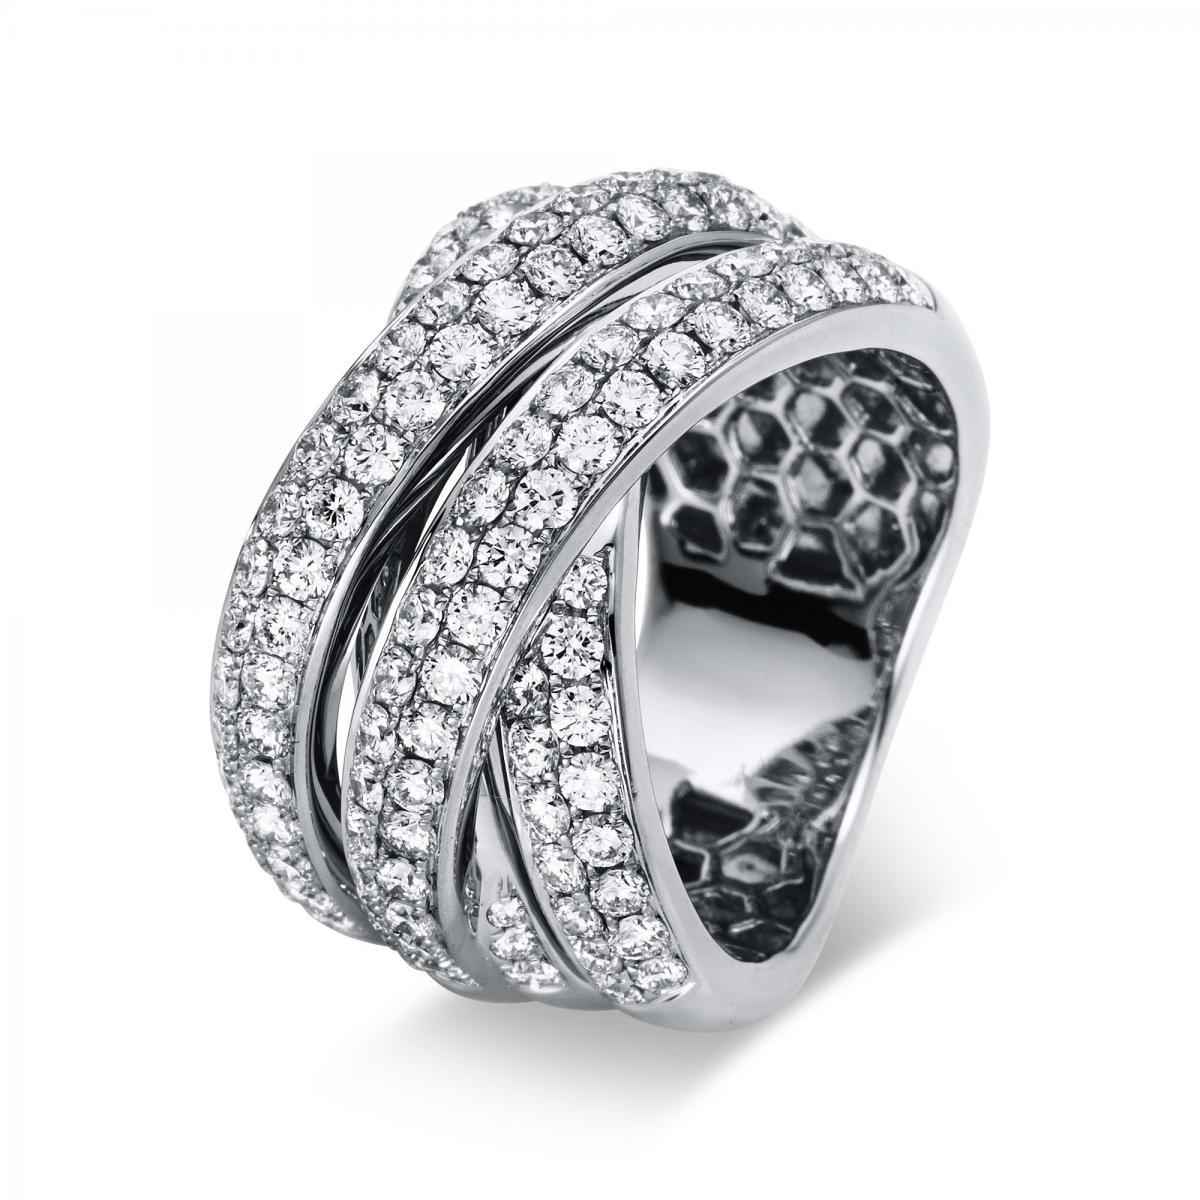 Ring 18 ct white gold with 120 brilliants ca. 2,44 ct, size 55